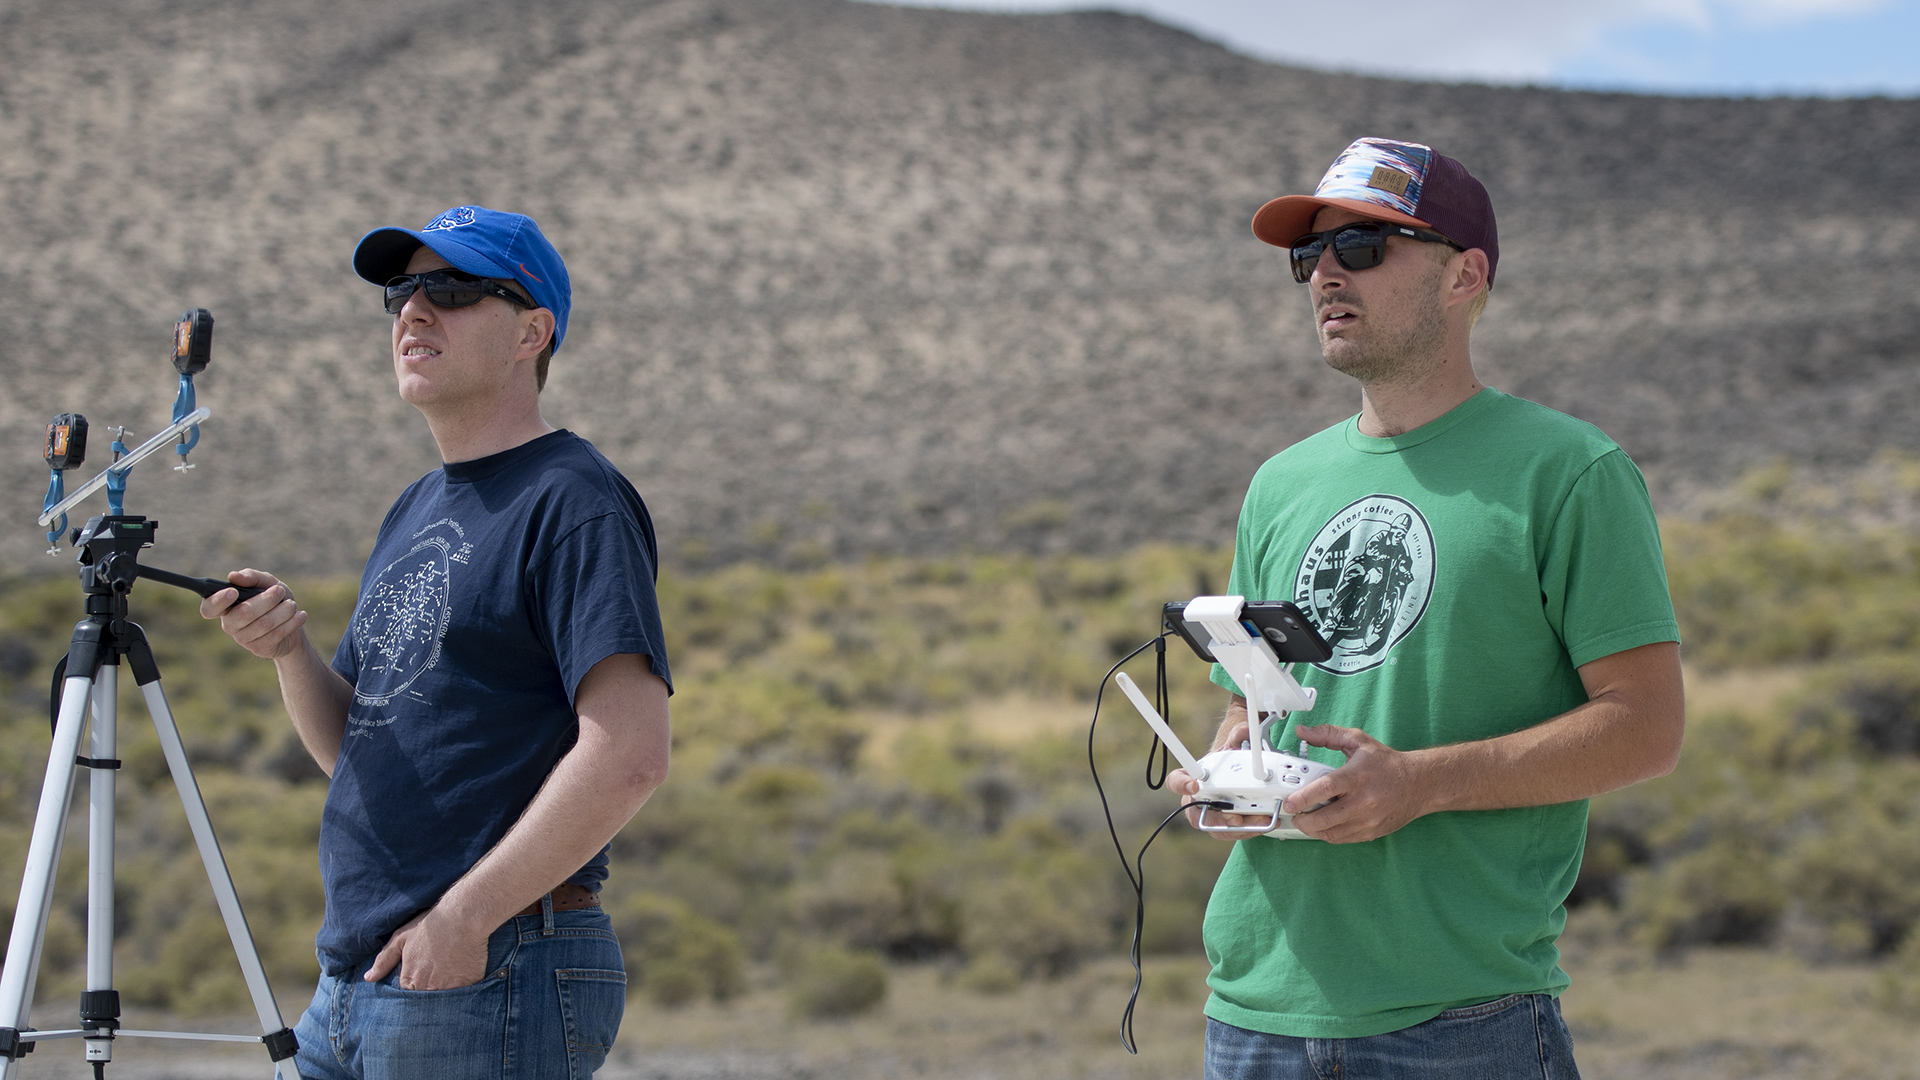 One researcher holding onto tripod, the other one piloting the drone with a controller